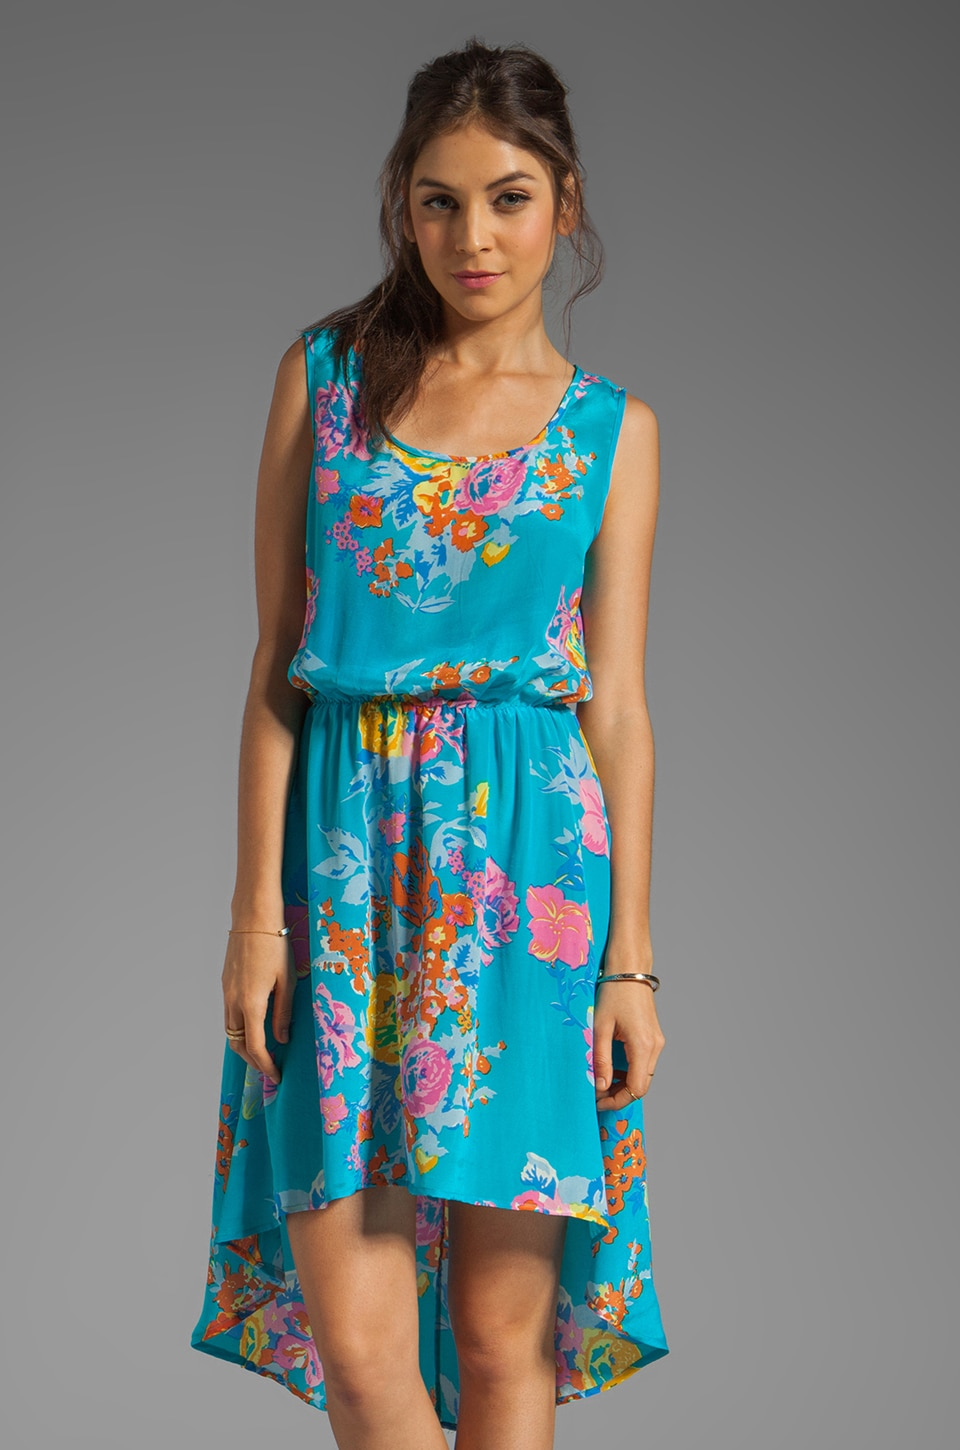 Tolani Selena Asymmetric Dress in Blue Floral